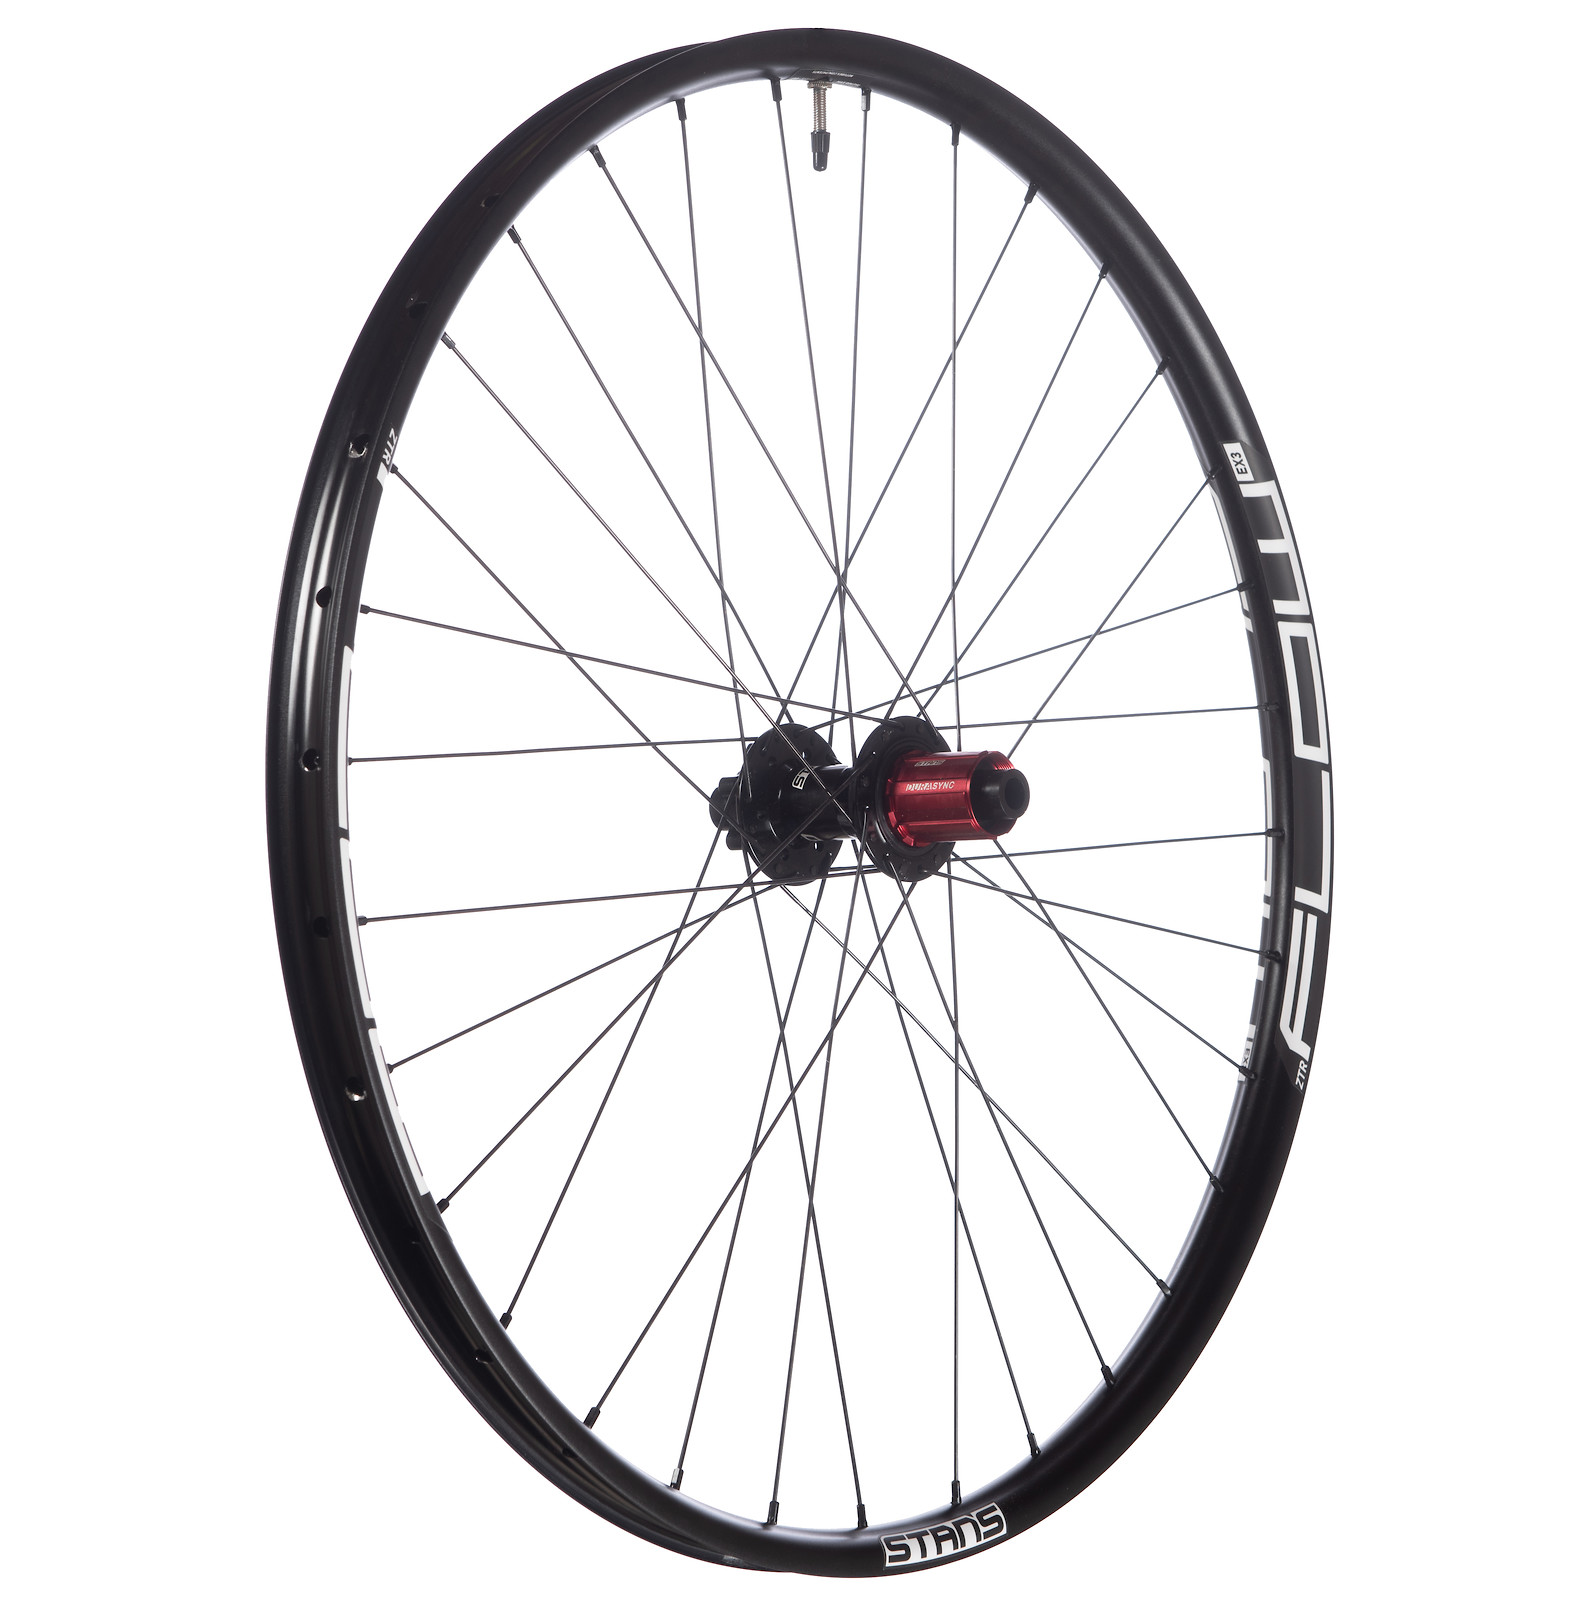 Flow EX3 rear wheel